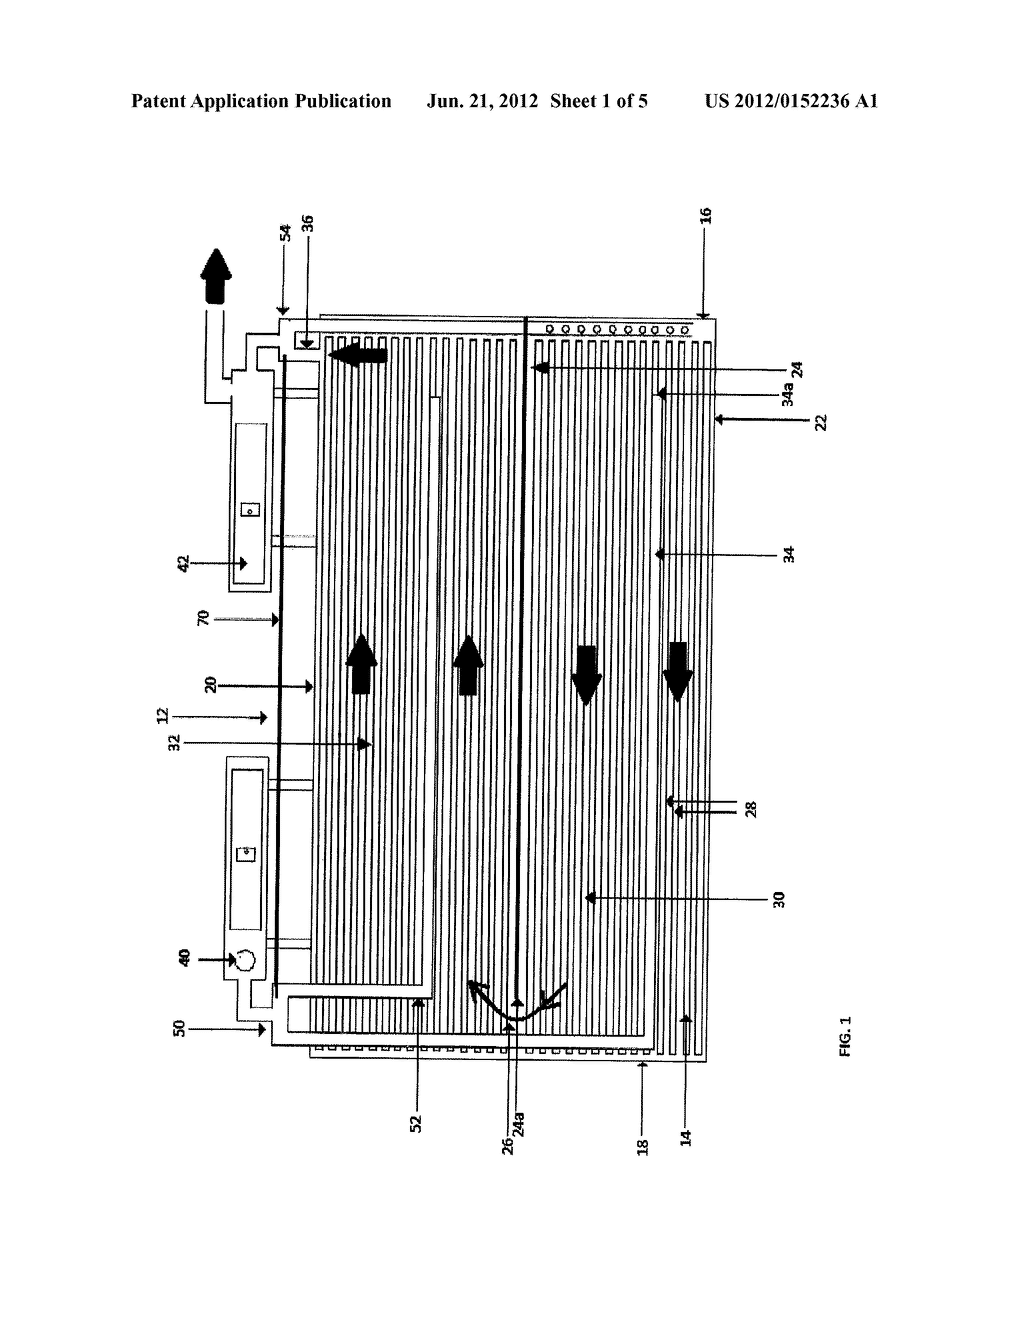 method and apparatus for reducing and removing scale in a maple Maple Syrup Evaporator Plans method and apparatus for reducing and removing scale in a maple syrup evaporator diagram, schematic, and image 02